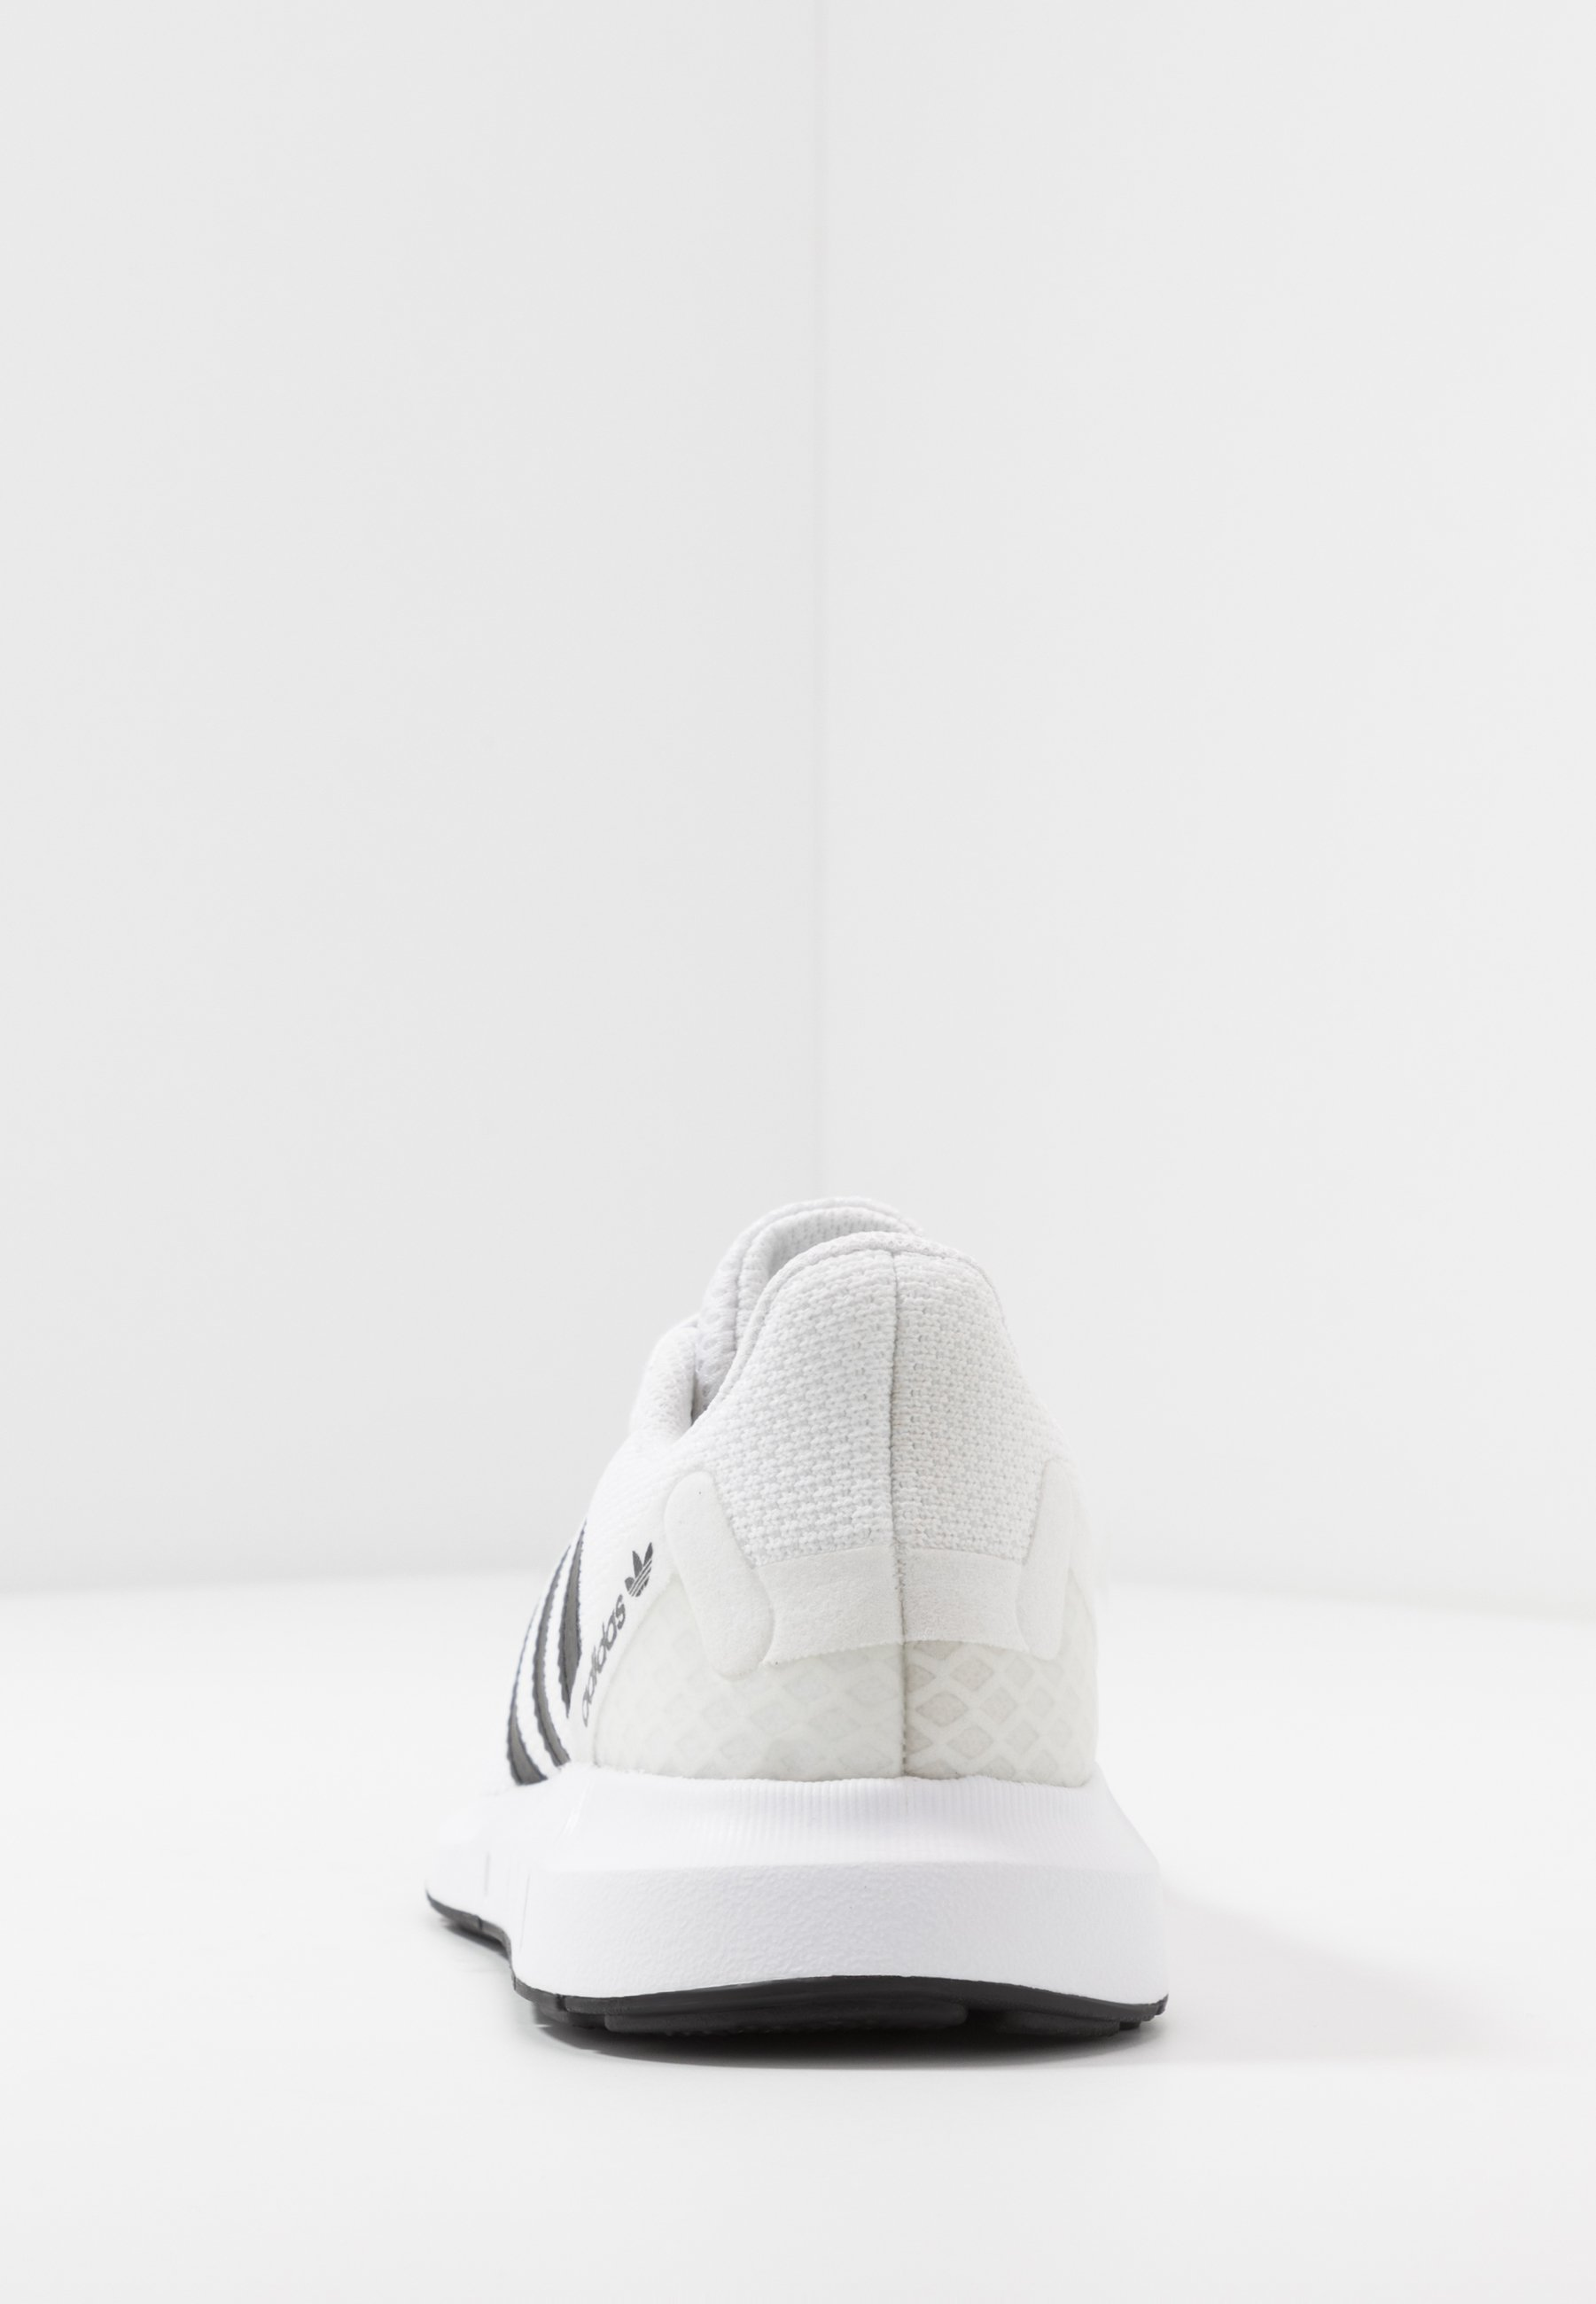 Adidas Originals Swift Run - Baskets Basses Ftwwht/cblack/ftwwht